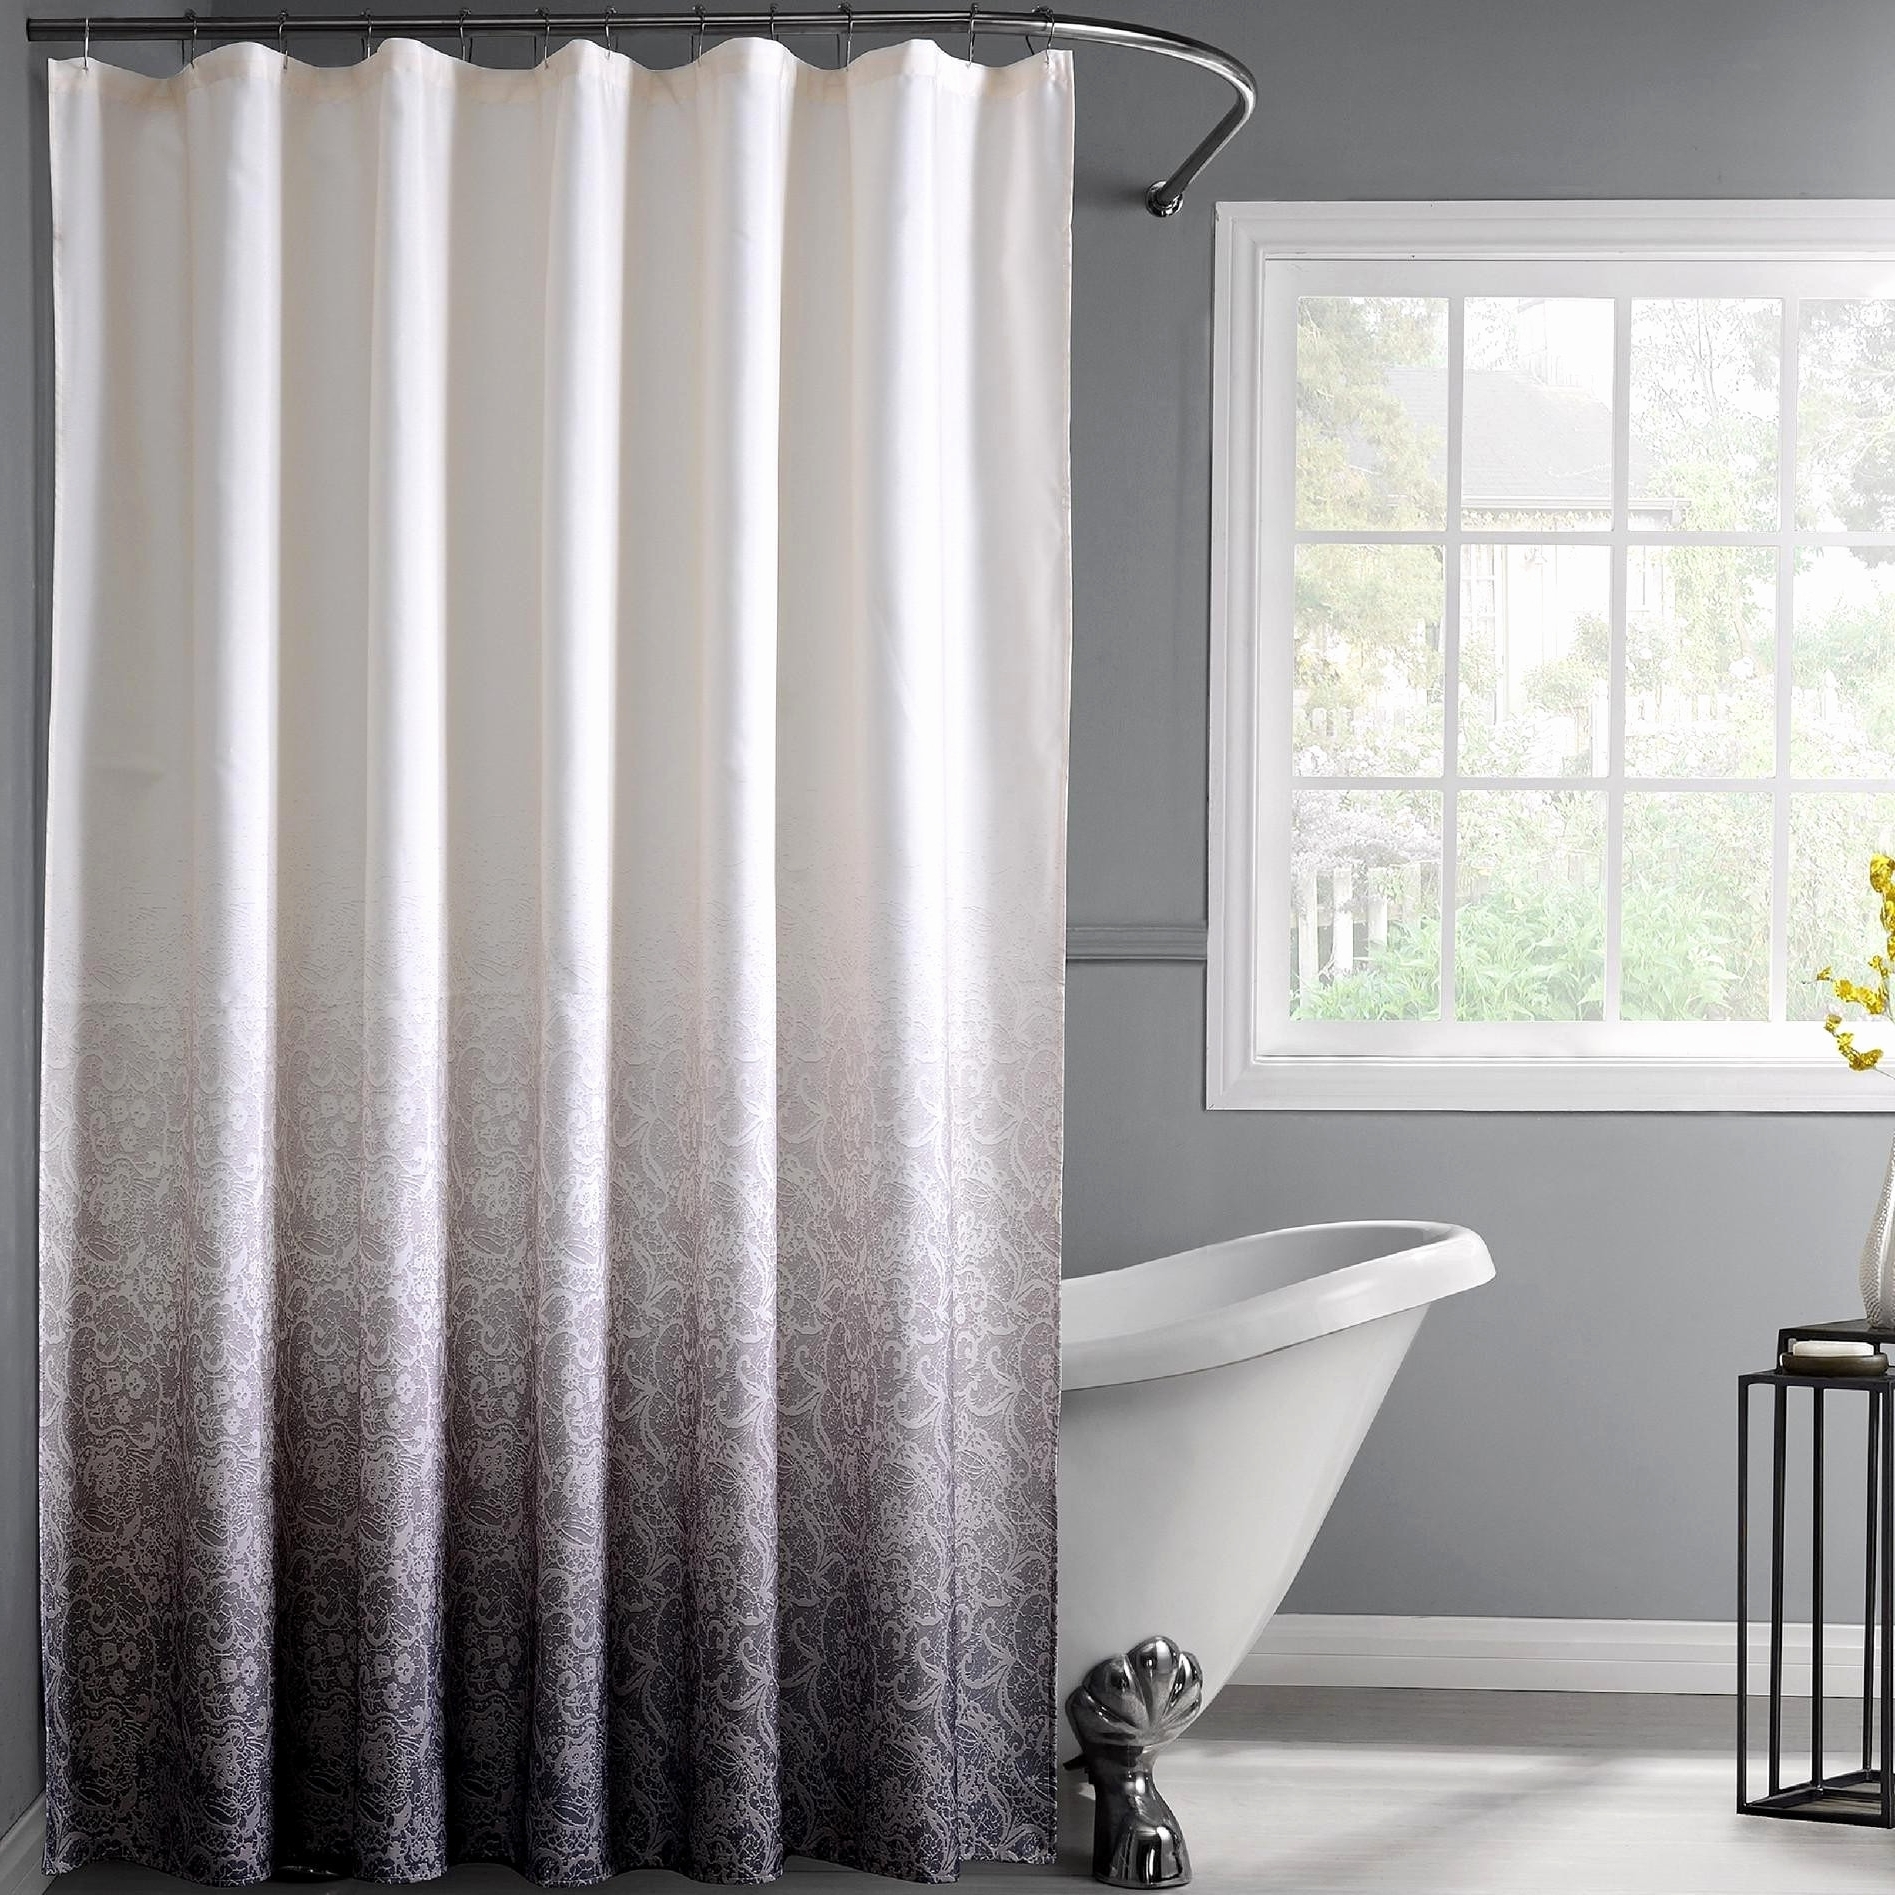 Most Recently Released 32 Lovely Shower Curtain Wall Art Design Ideas Of Art Shower Curtain Regarding Shower Curtain Wall Art (Gallery 16 of 20)